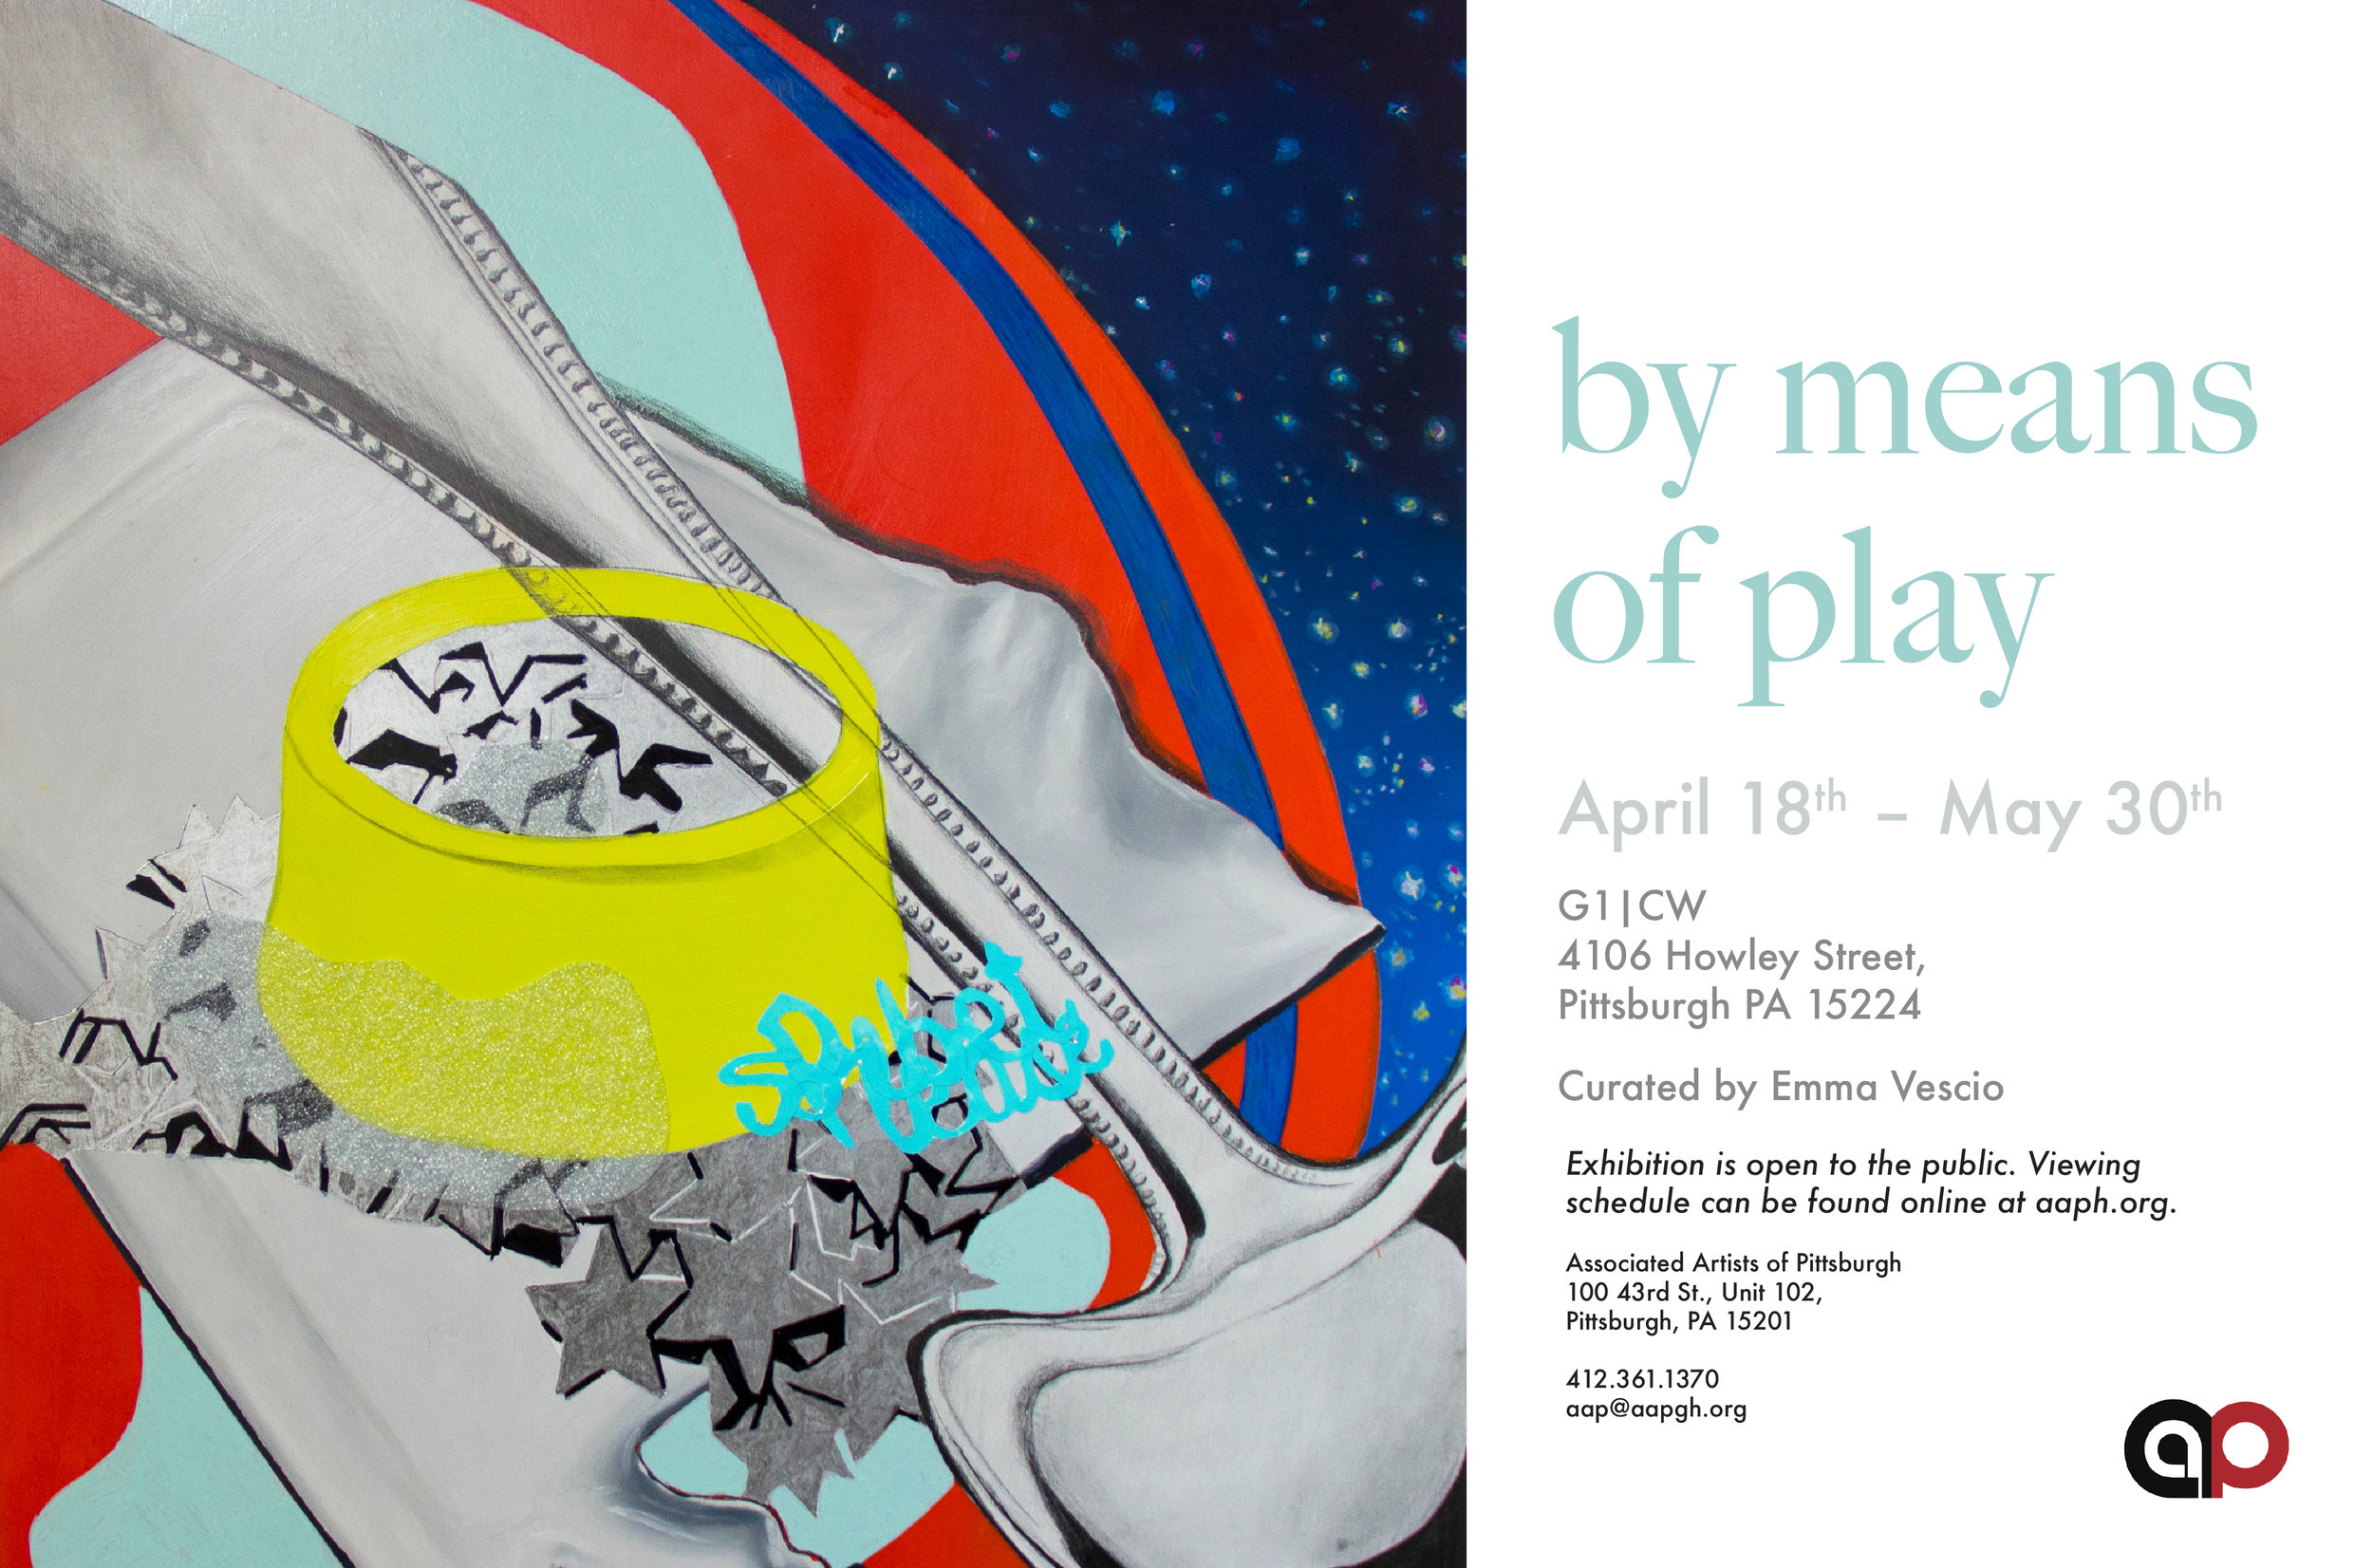 by means of play - April 16 - May 30, 2018Gallery One, 4106 Howley St., Pittsburgh, PA 15224Like ivy, we grow where there is room for us. - Miranda JulyBy Means of Play is an exhibition juried and curated by Emma Vescio that explores celebratory and vibrant art and artmaking as practices of self-care, expressions of joy, and political engagement. The exhibition features both two-dimensional and three-dimensional works that highlight intimate, joyful, and passionate moments. The pieces engage viewers in various forms of immediate participation, either through looking or physical interaction.